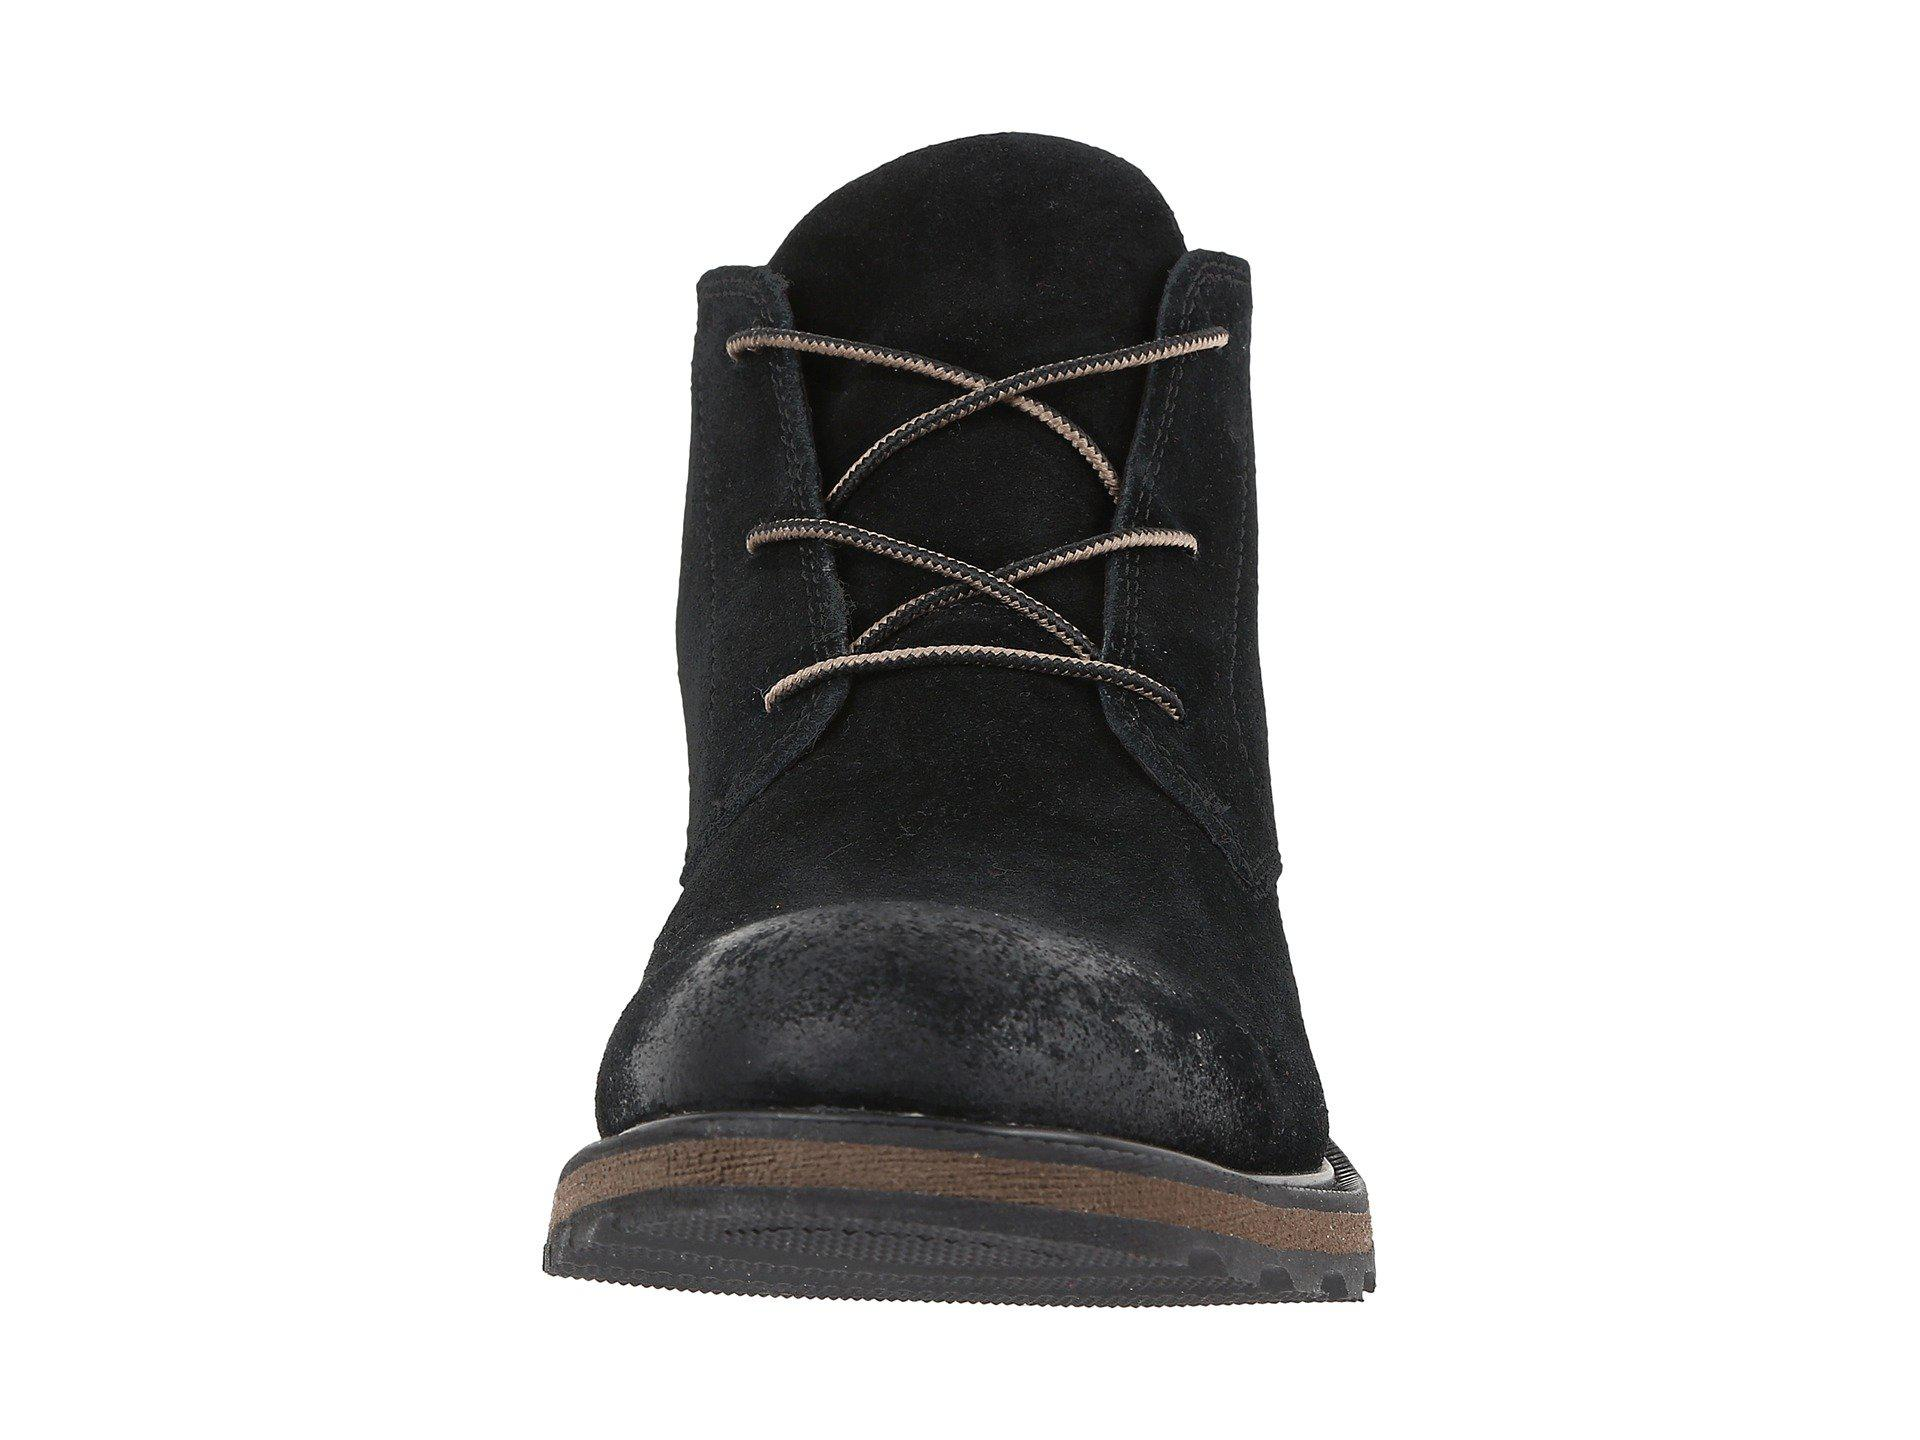 sorel black singles Designed for everyday fall and winter wear for the adventurous woman, the sorel tivoli high iii snow boots deliver comfort down to 0°f wear them around the city or.